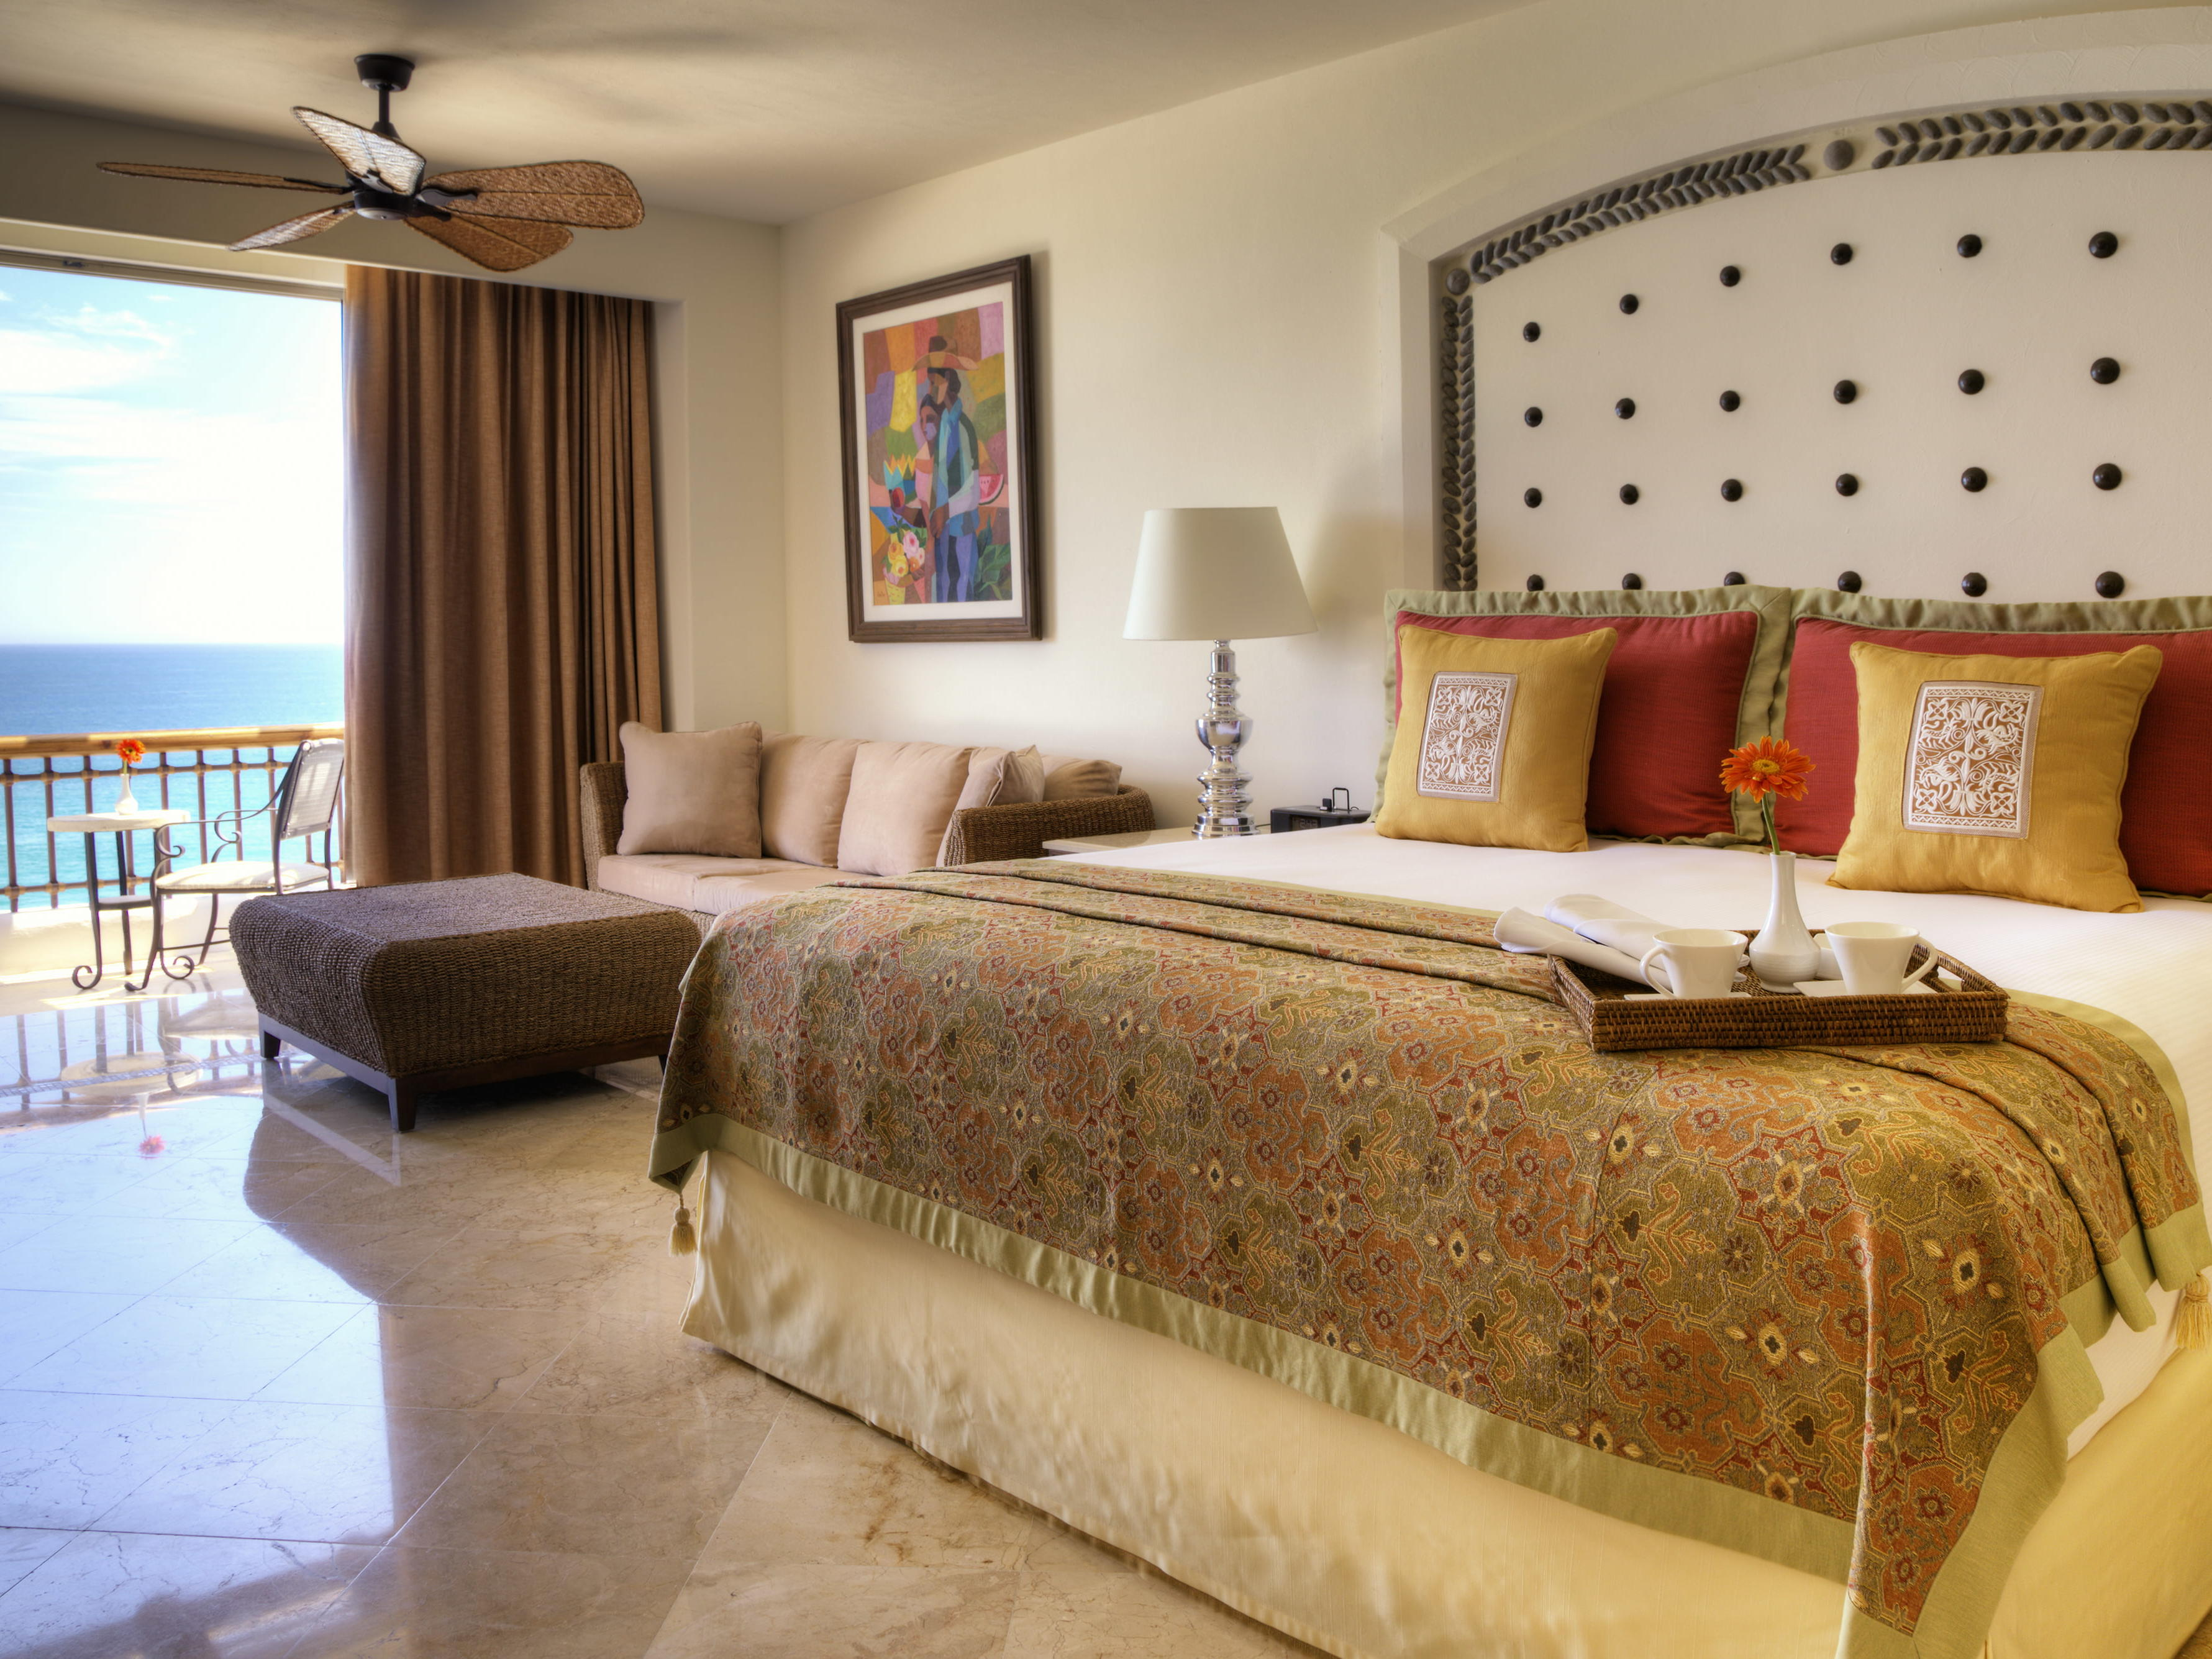 A bed and couch in a hotel room - Marquis Los Cabos